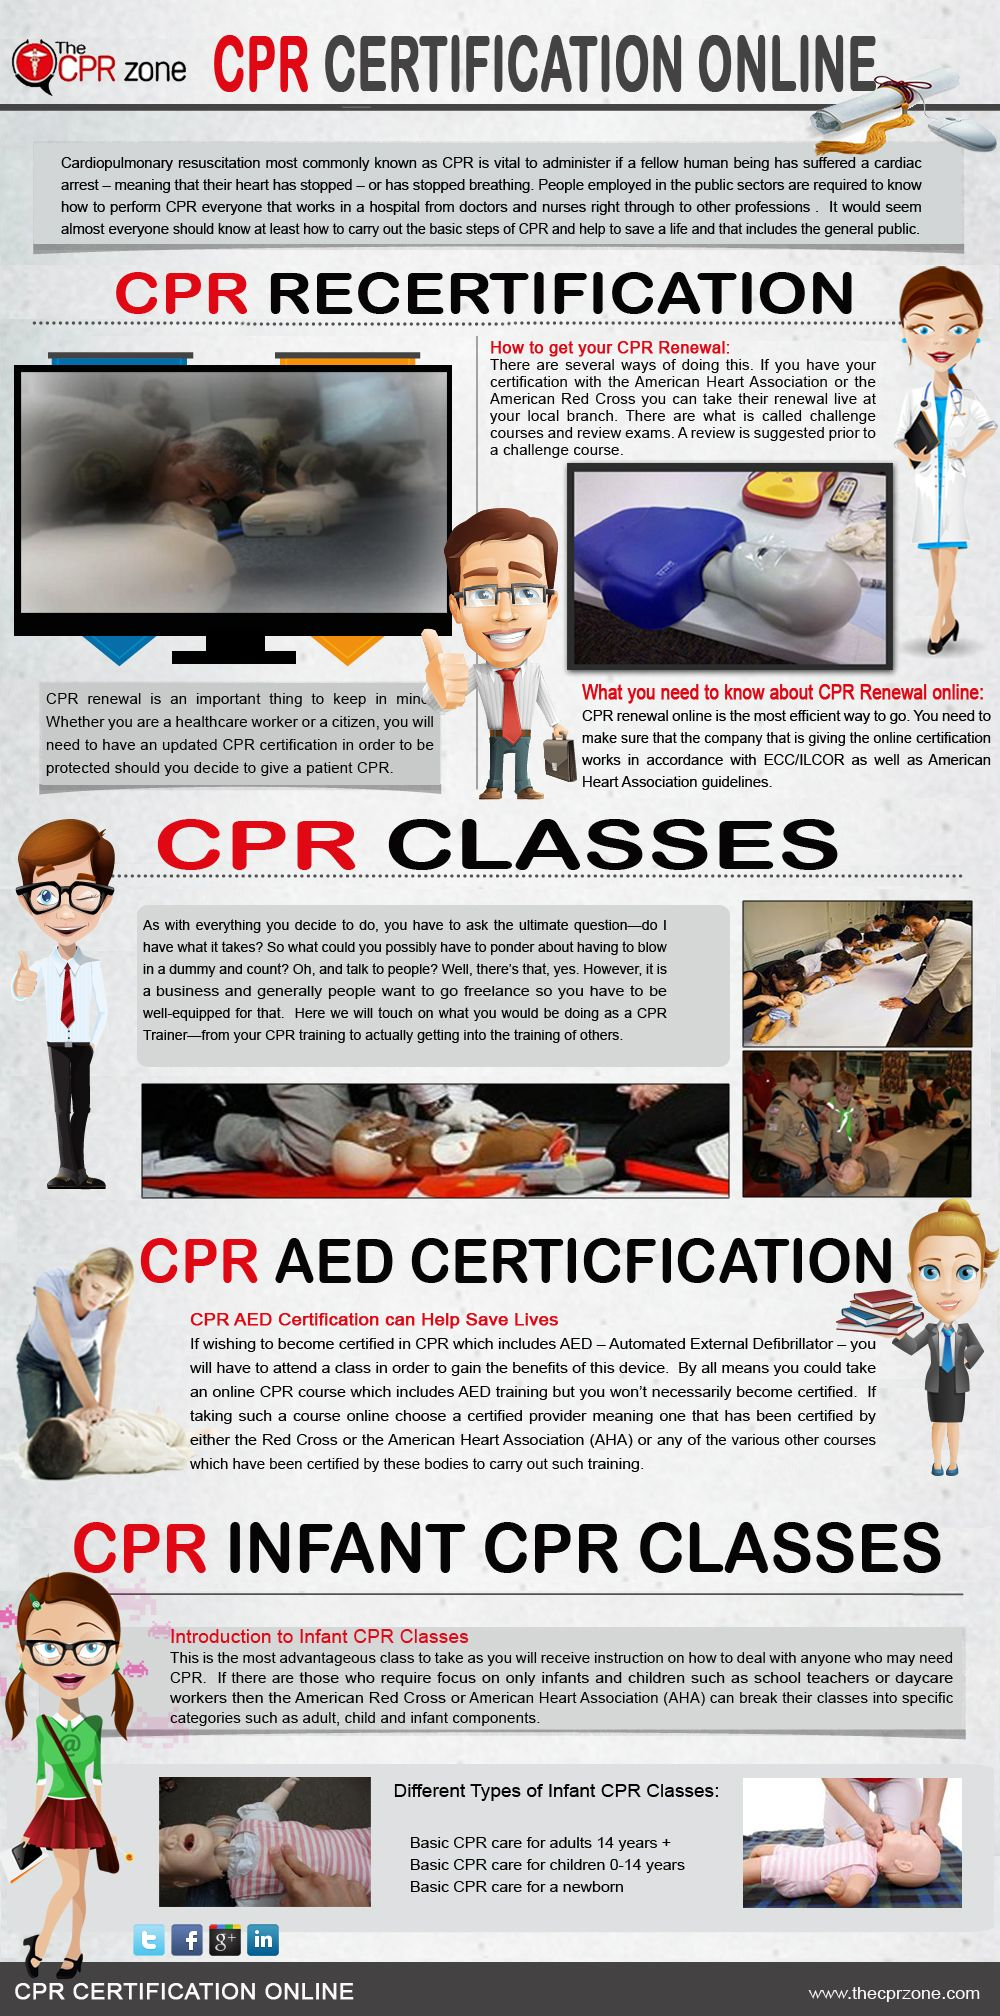 Cpr Certification Online Is Much Cheaper Compared To Regular Cpr